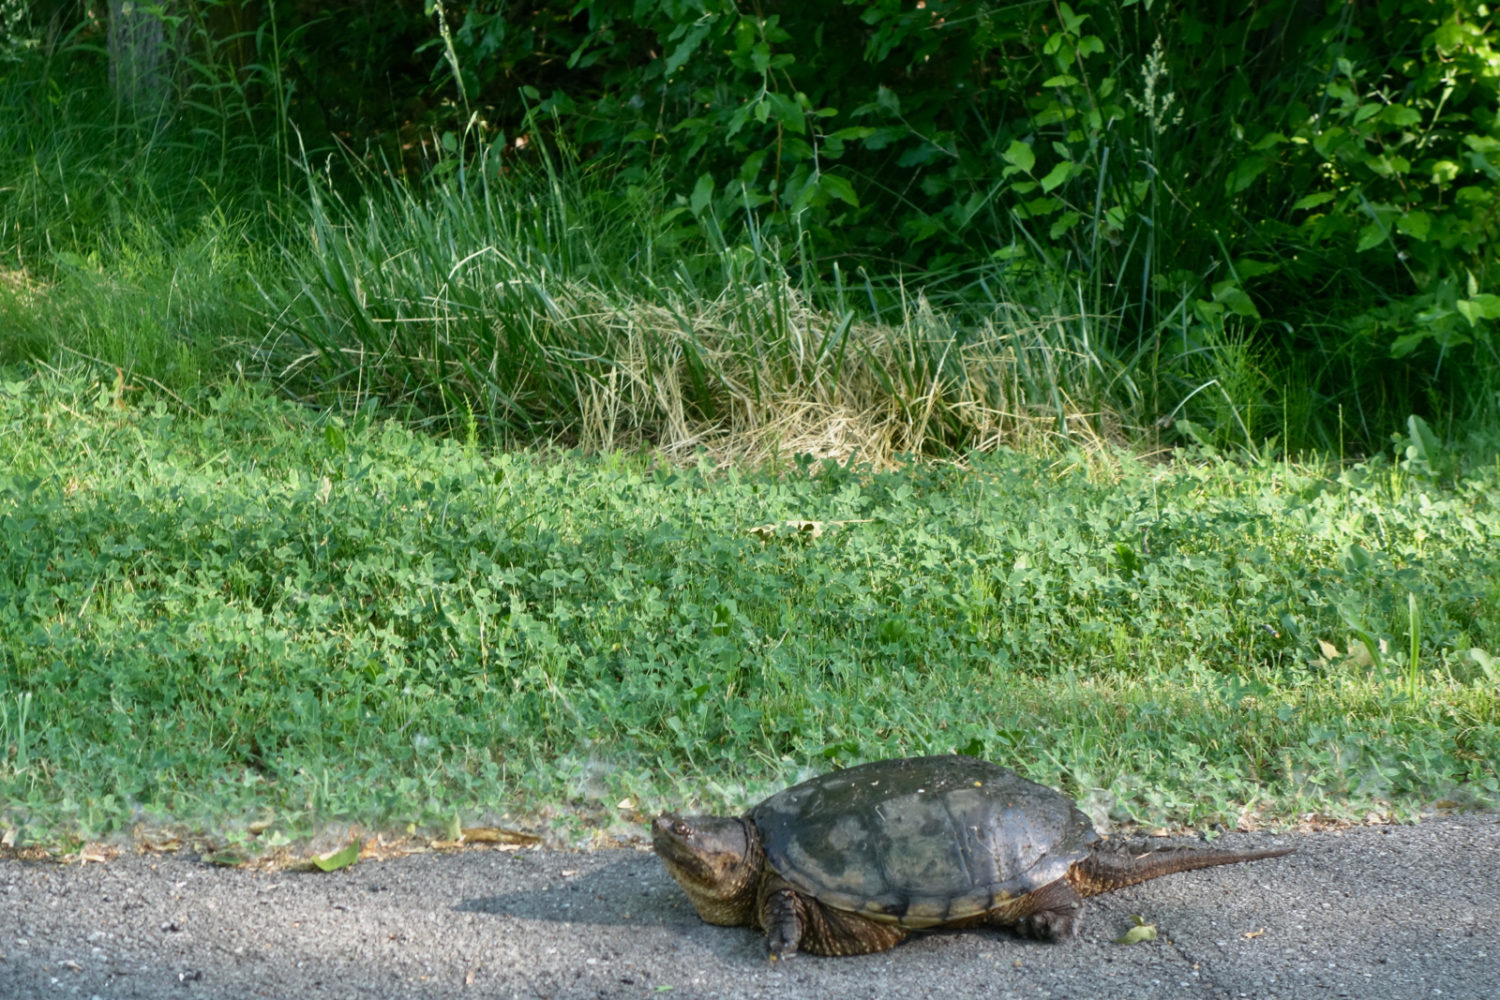 Mama snapping turtle looking for a place to lay her eggs at Conifer and Hoffman in Rochester, New York.